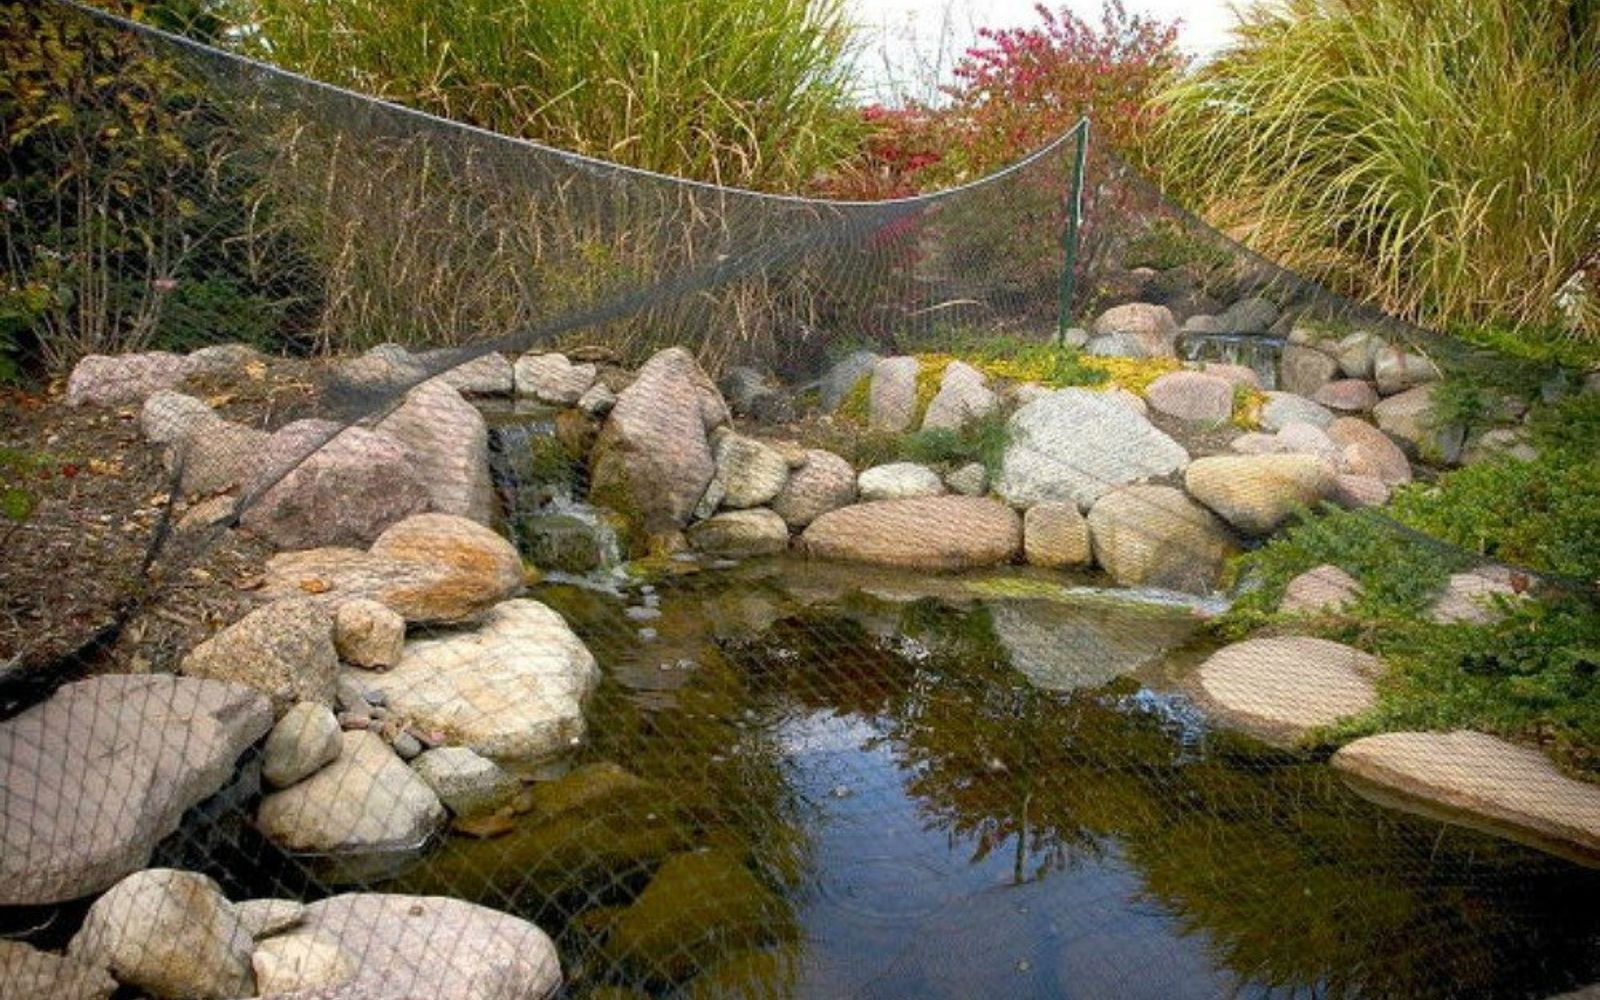 s see how 11 clever gardeners get their yards ready for fall, gardening, They cover their ponds with a net